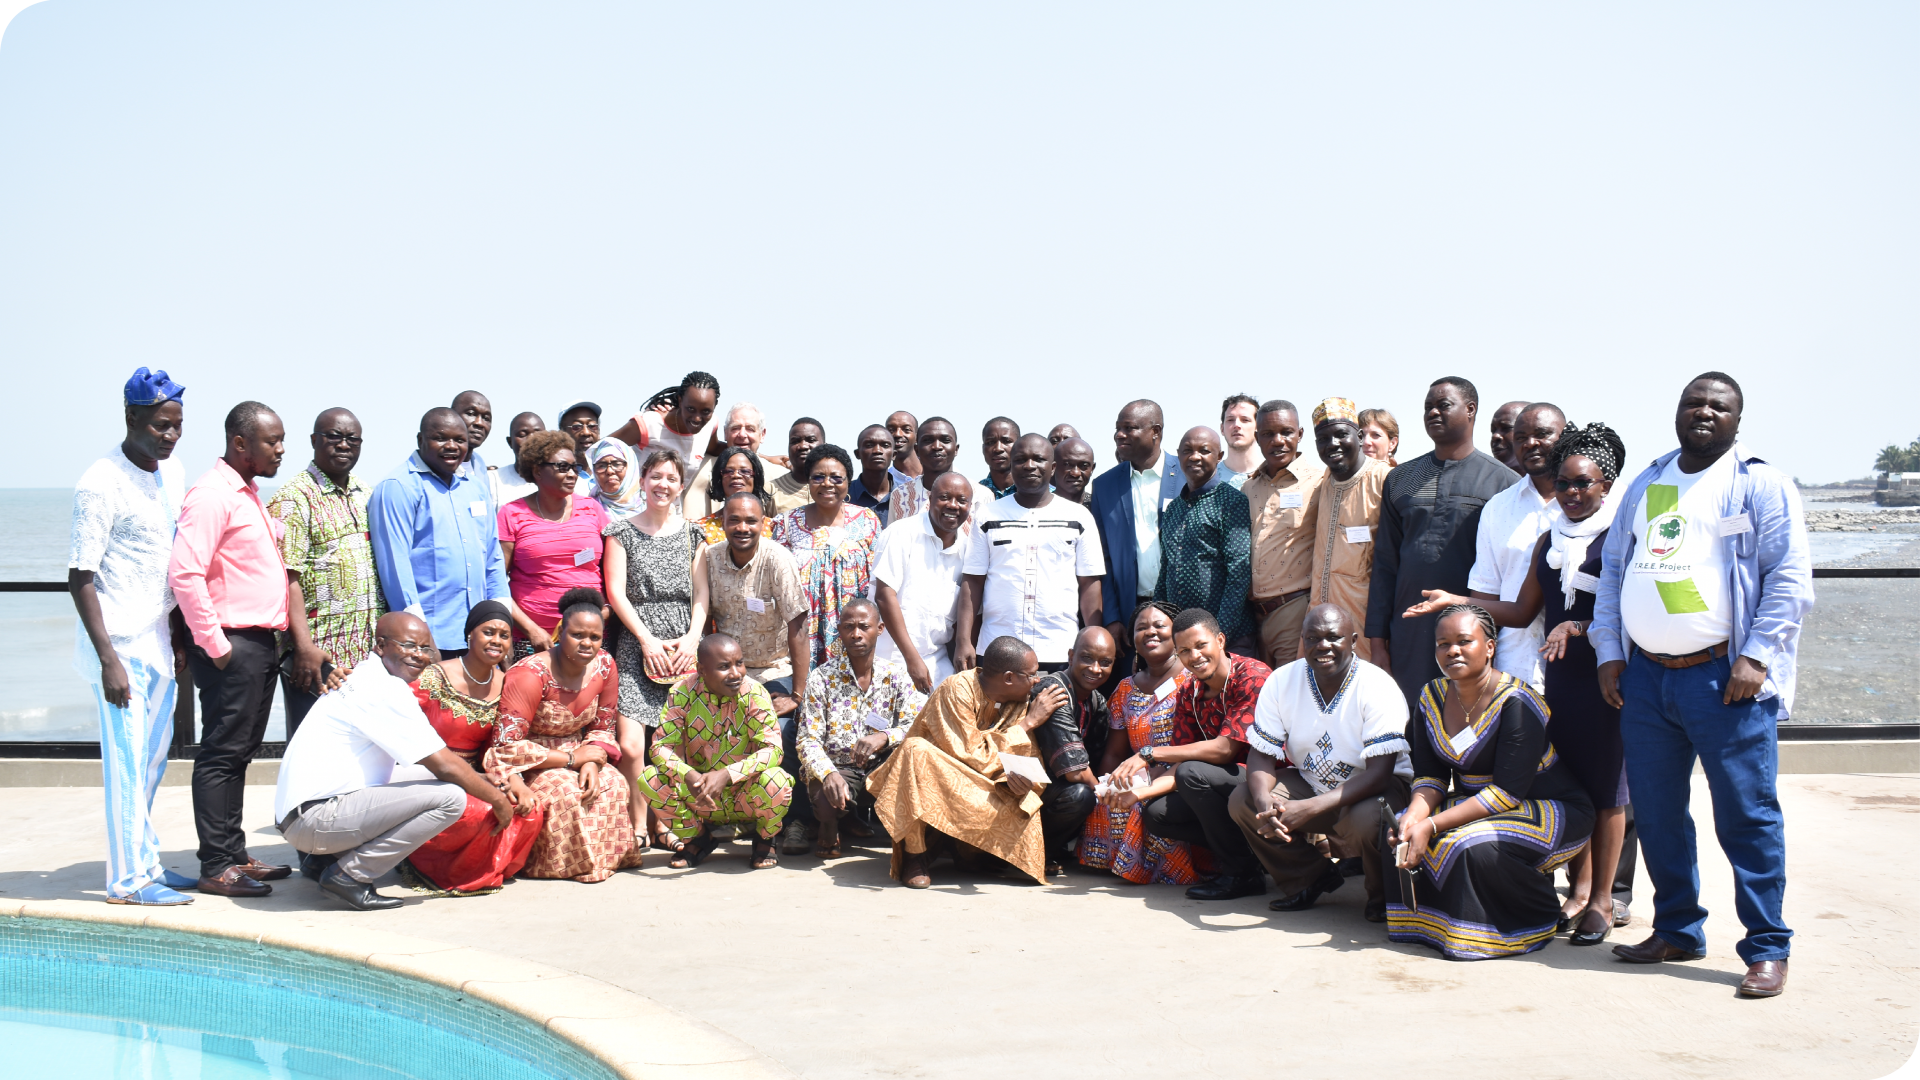 In Conakry, IDAY held its General Assembly